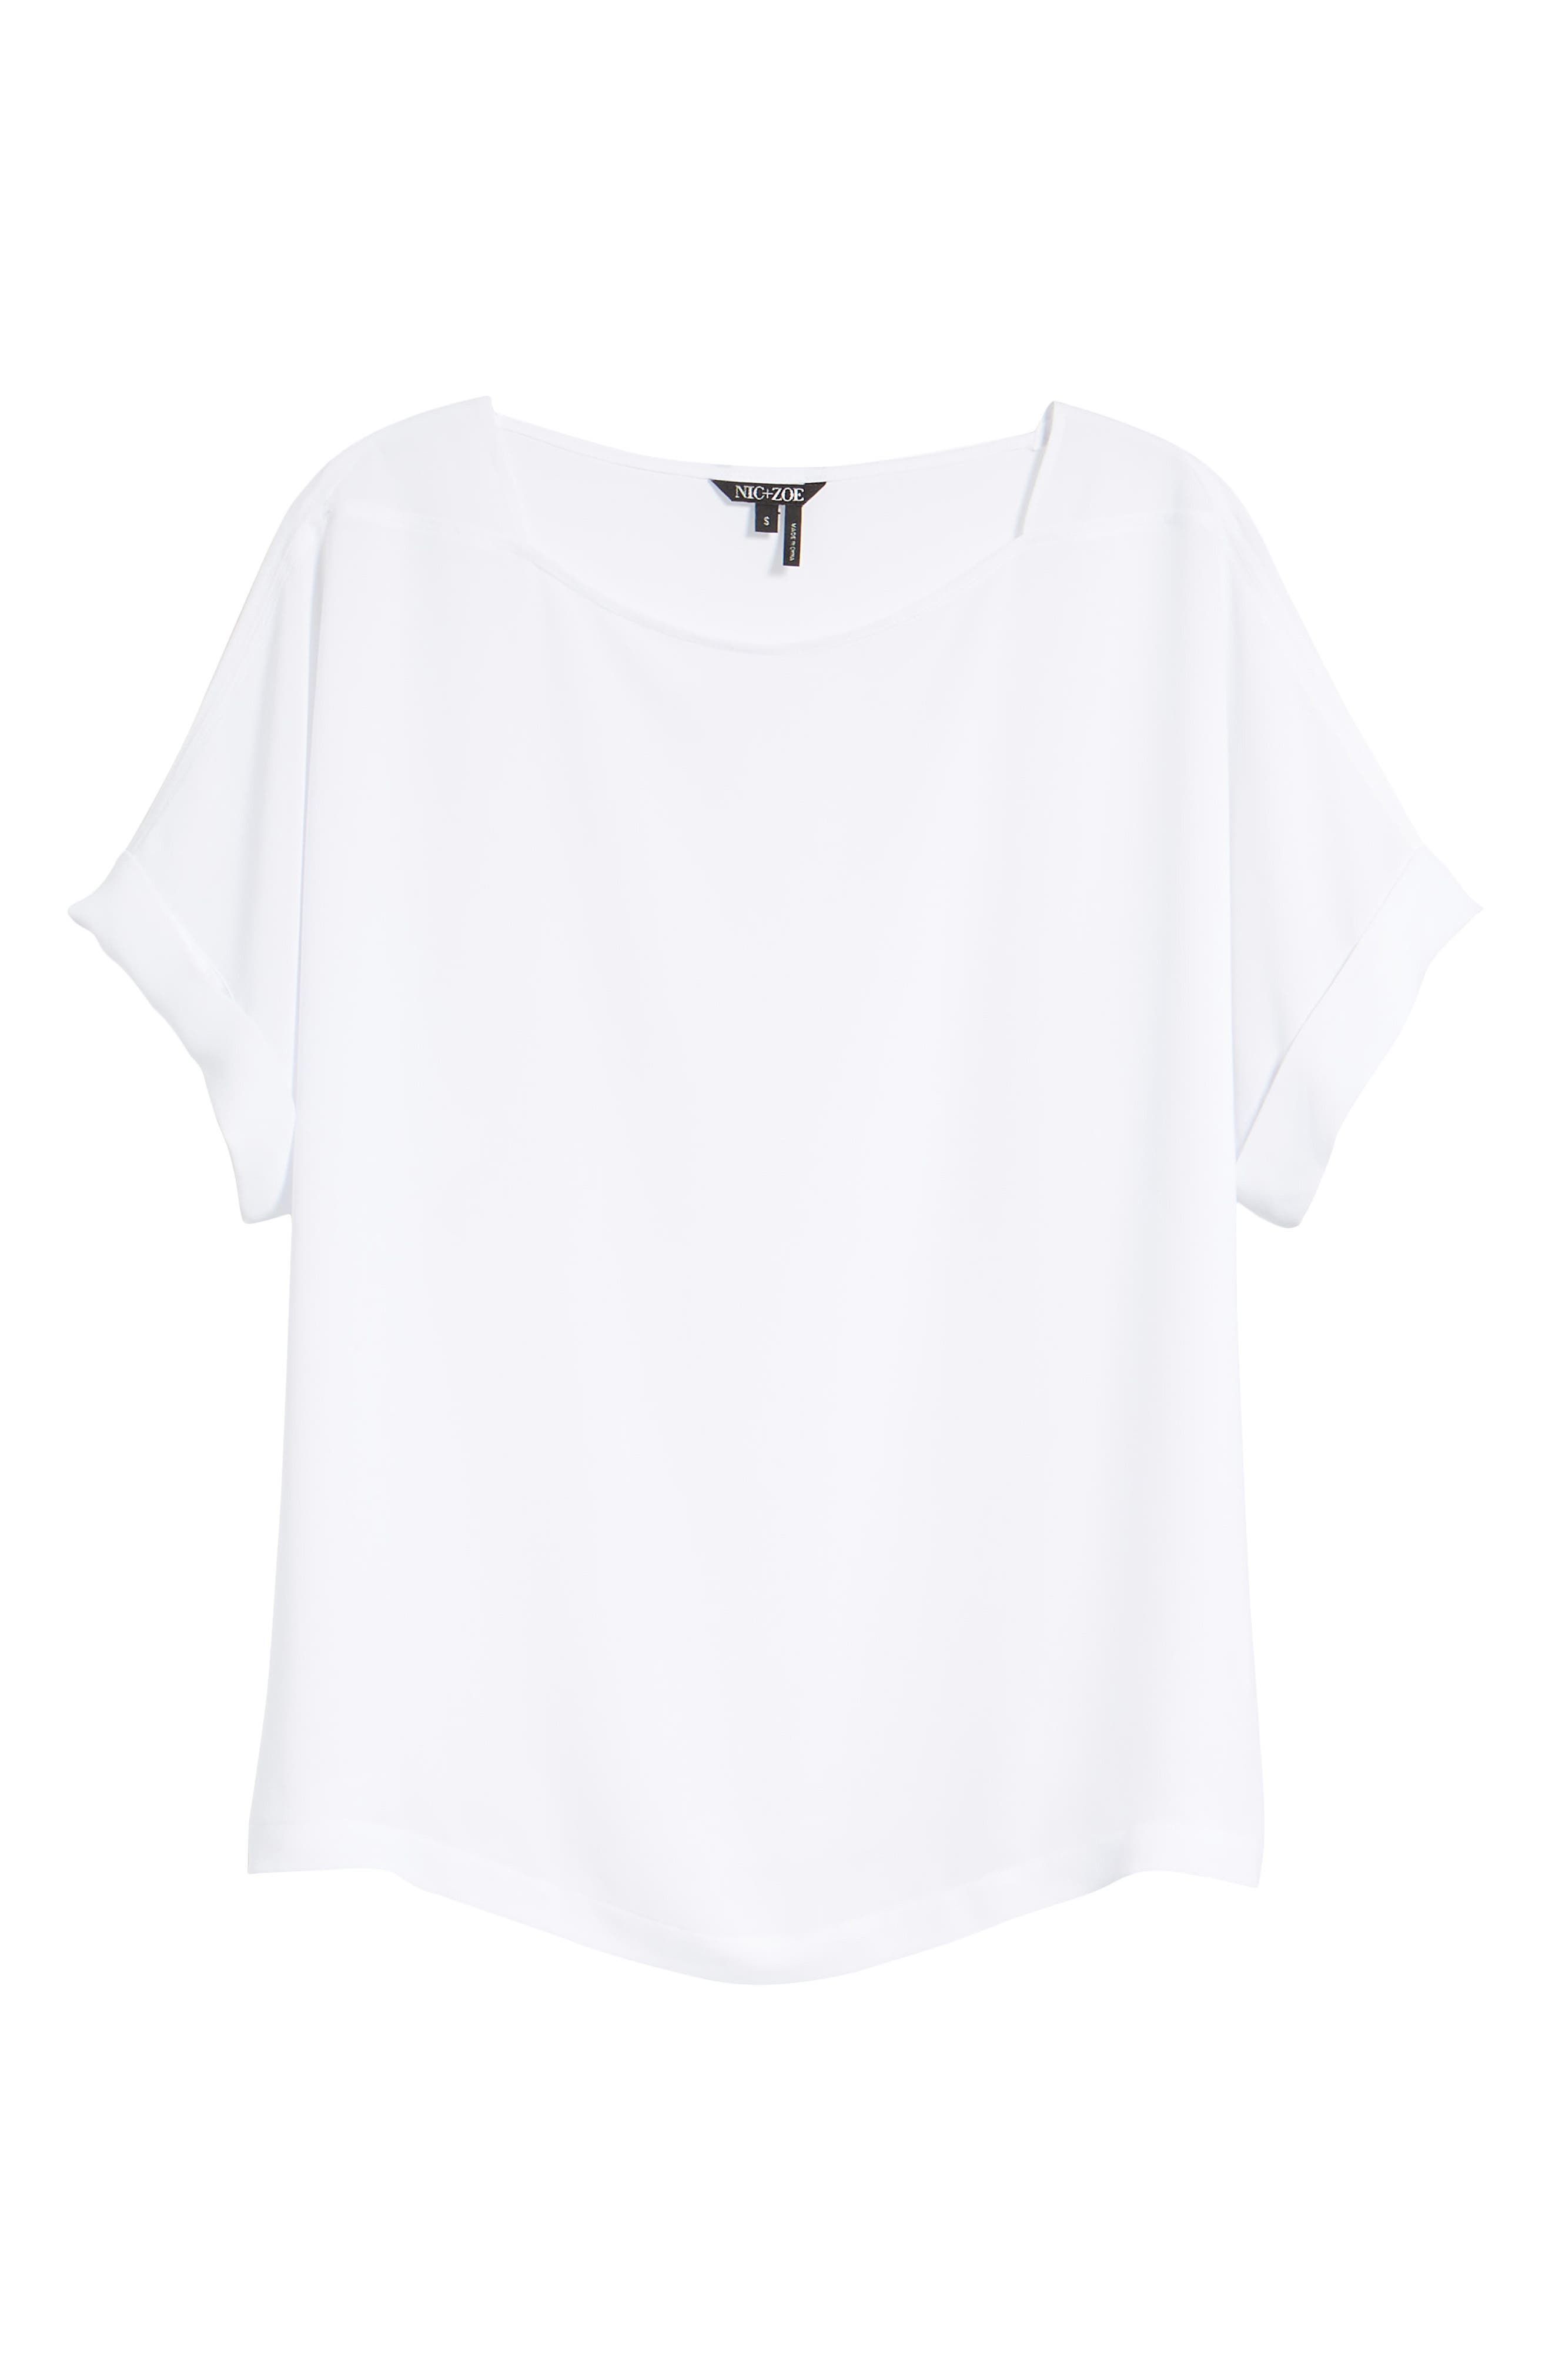 NIC + ZOE Moroccan Tee,                         Main,                         color, Paper White